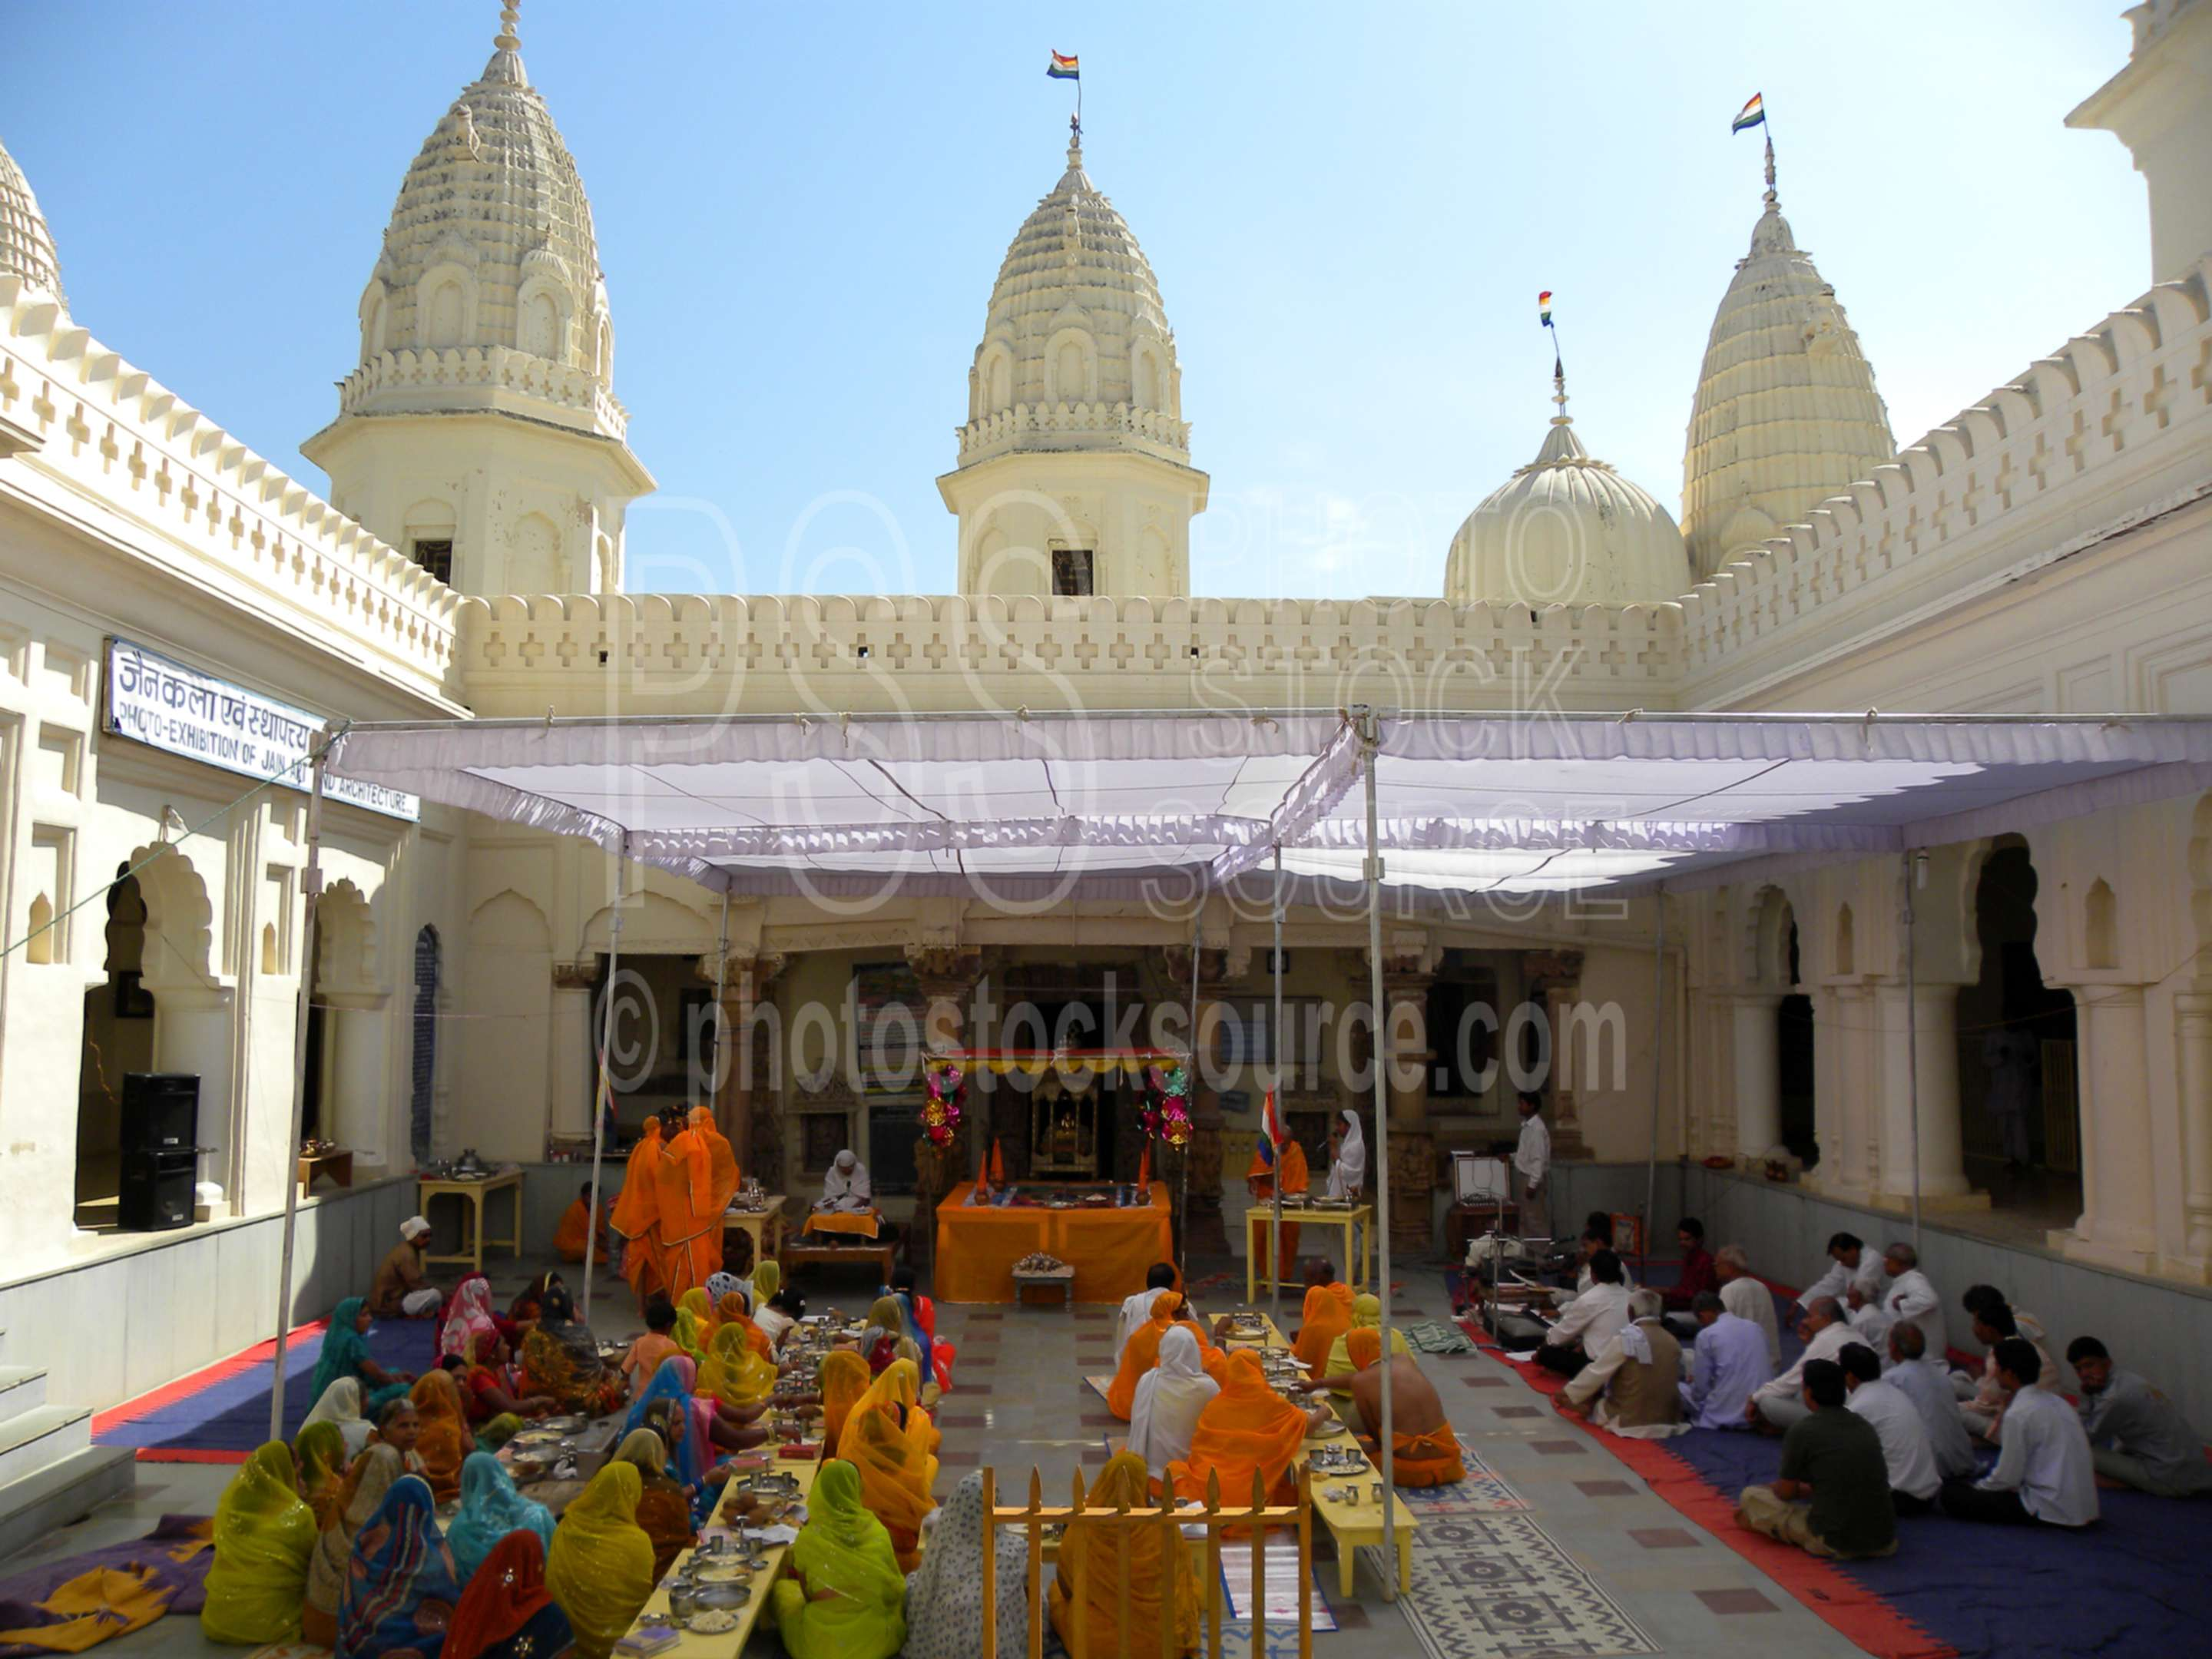 Shri Shantinath Courtyard,eastern group,temple,shrine,ceremony,hindu,religious,worship,worshipping,pray,praying,people,architecture,ceremonies,temples